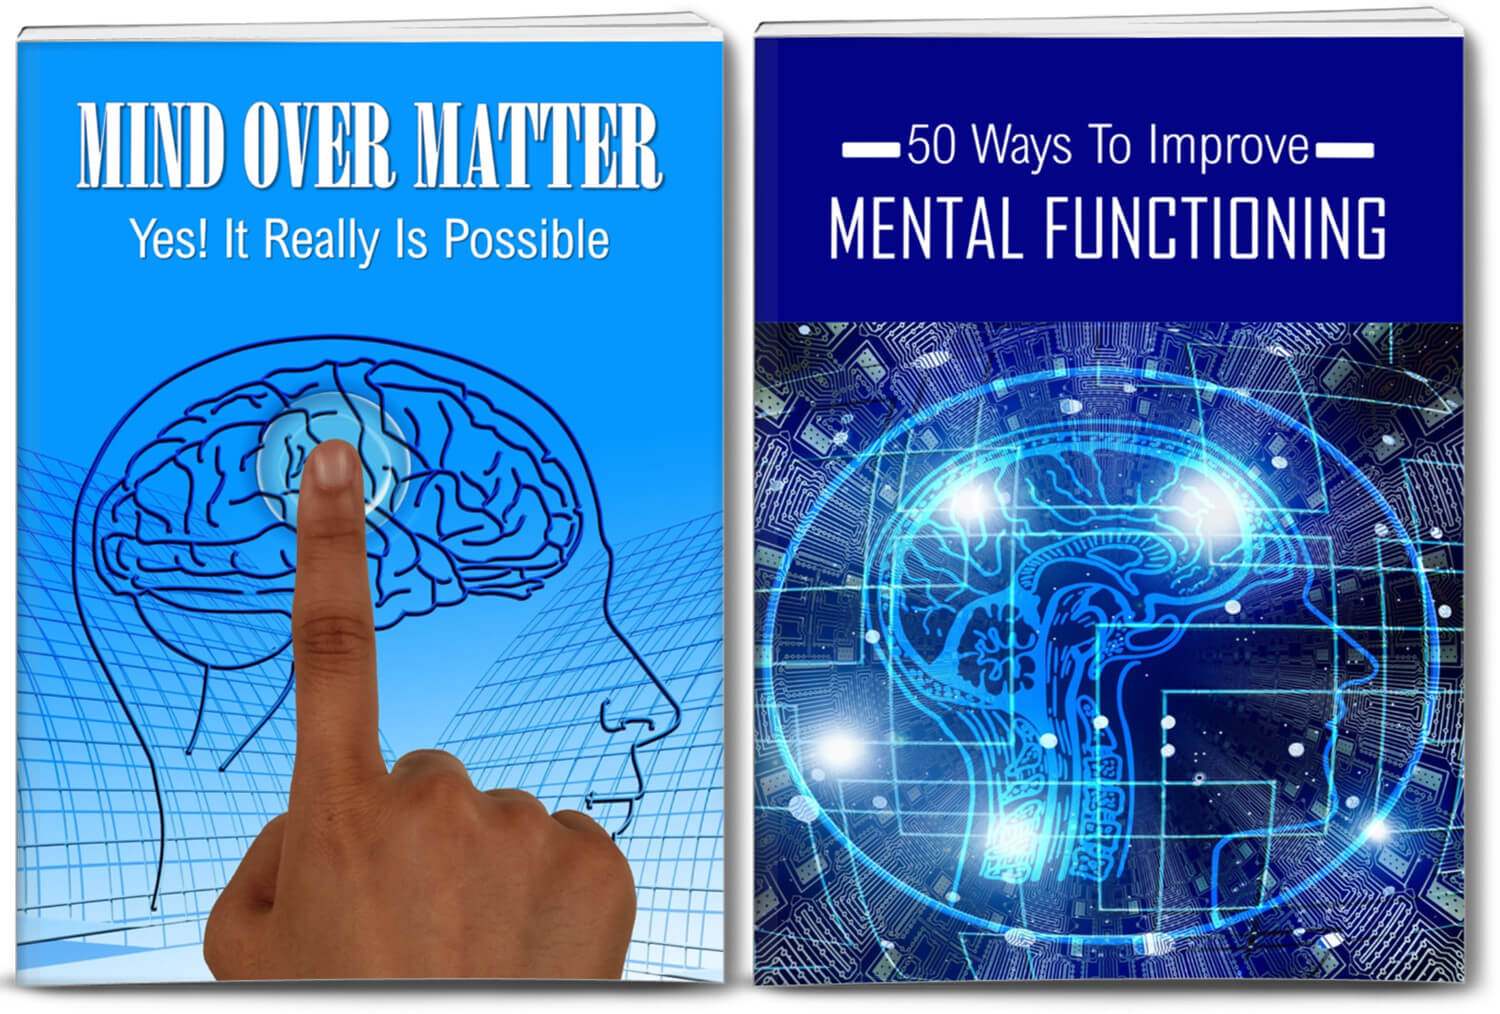 mental health and wellness PLR